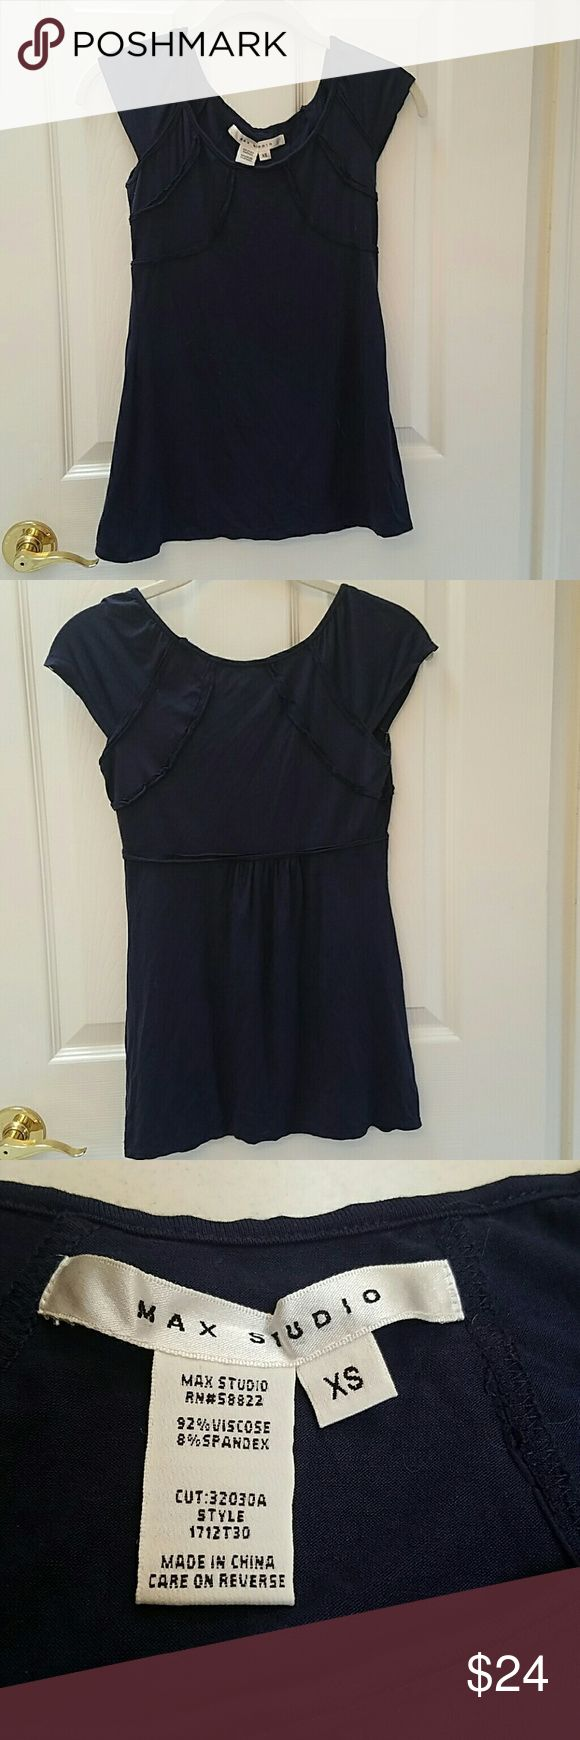 Max Studio navy short sleeve top. XS Max Studio navy short sleeve top. XS. Soft & comfy. A perfect navy blue wardrobe staple. Excellent condition. Max Studio Tops